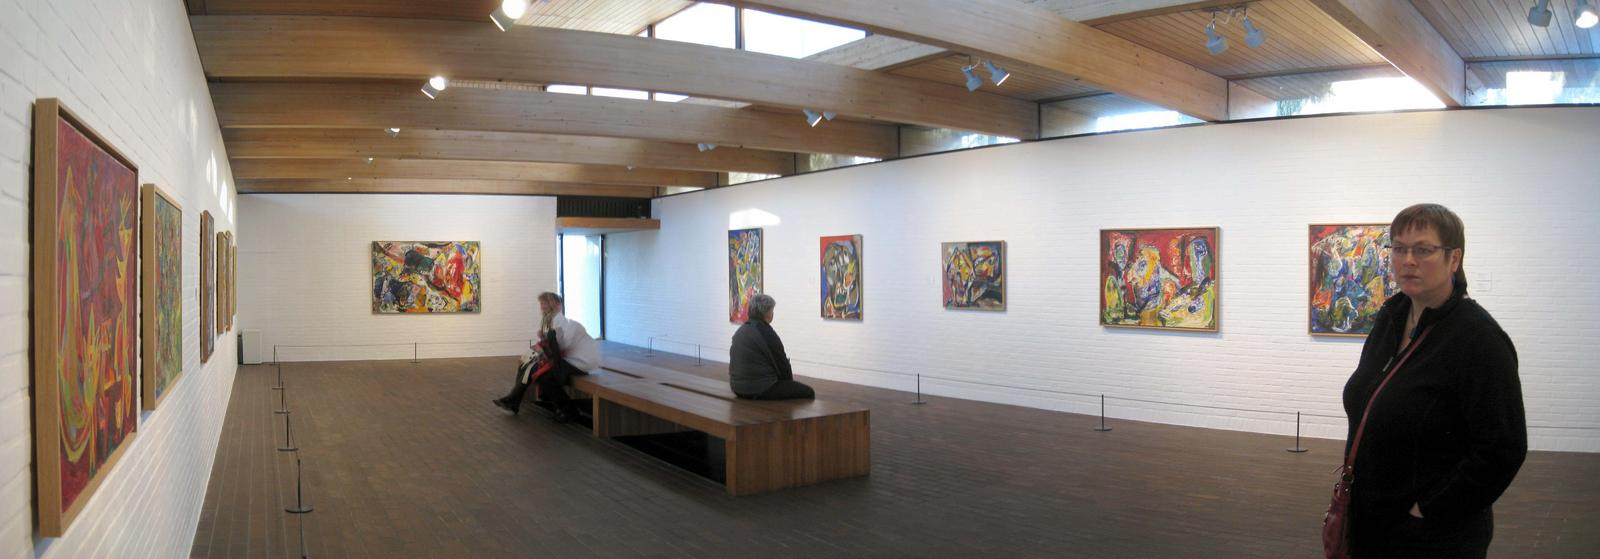 Great Art Gallery Interiors 1600 x 559 · 108 kB · jpeg